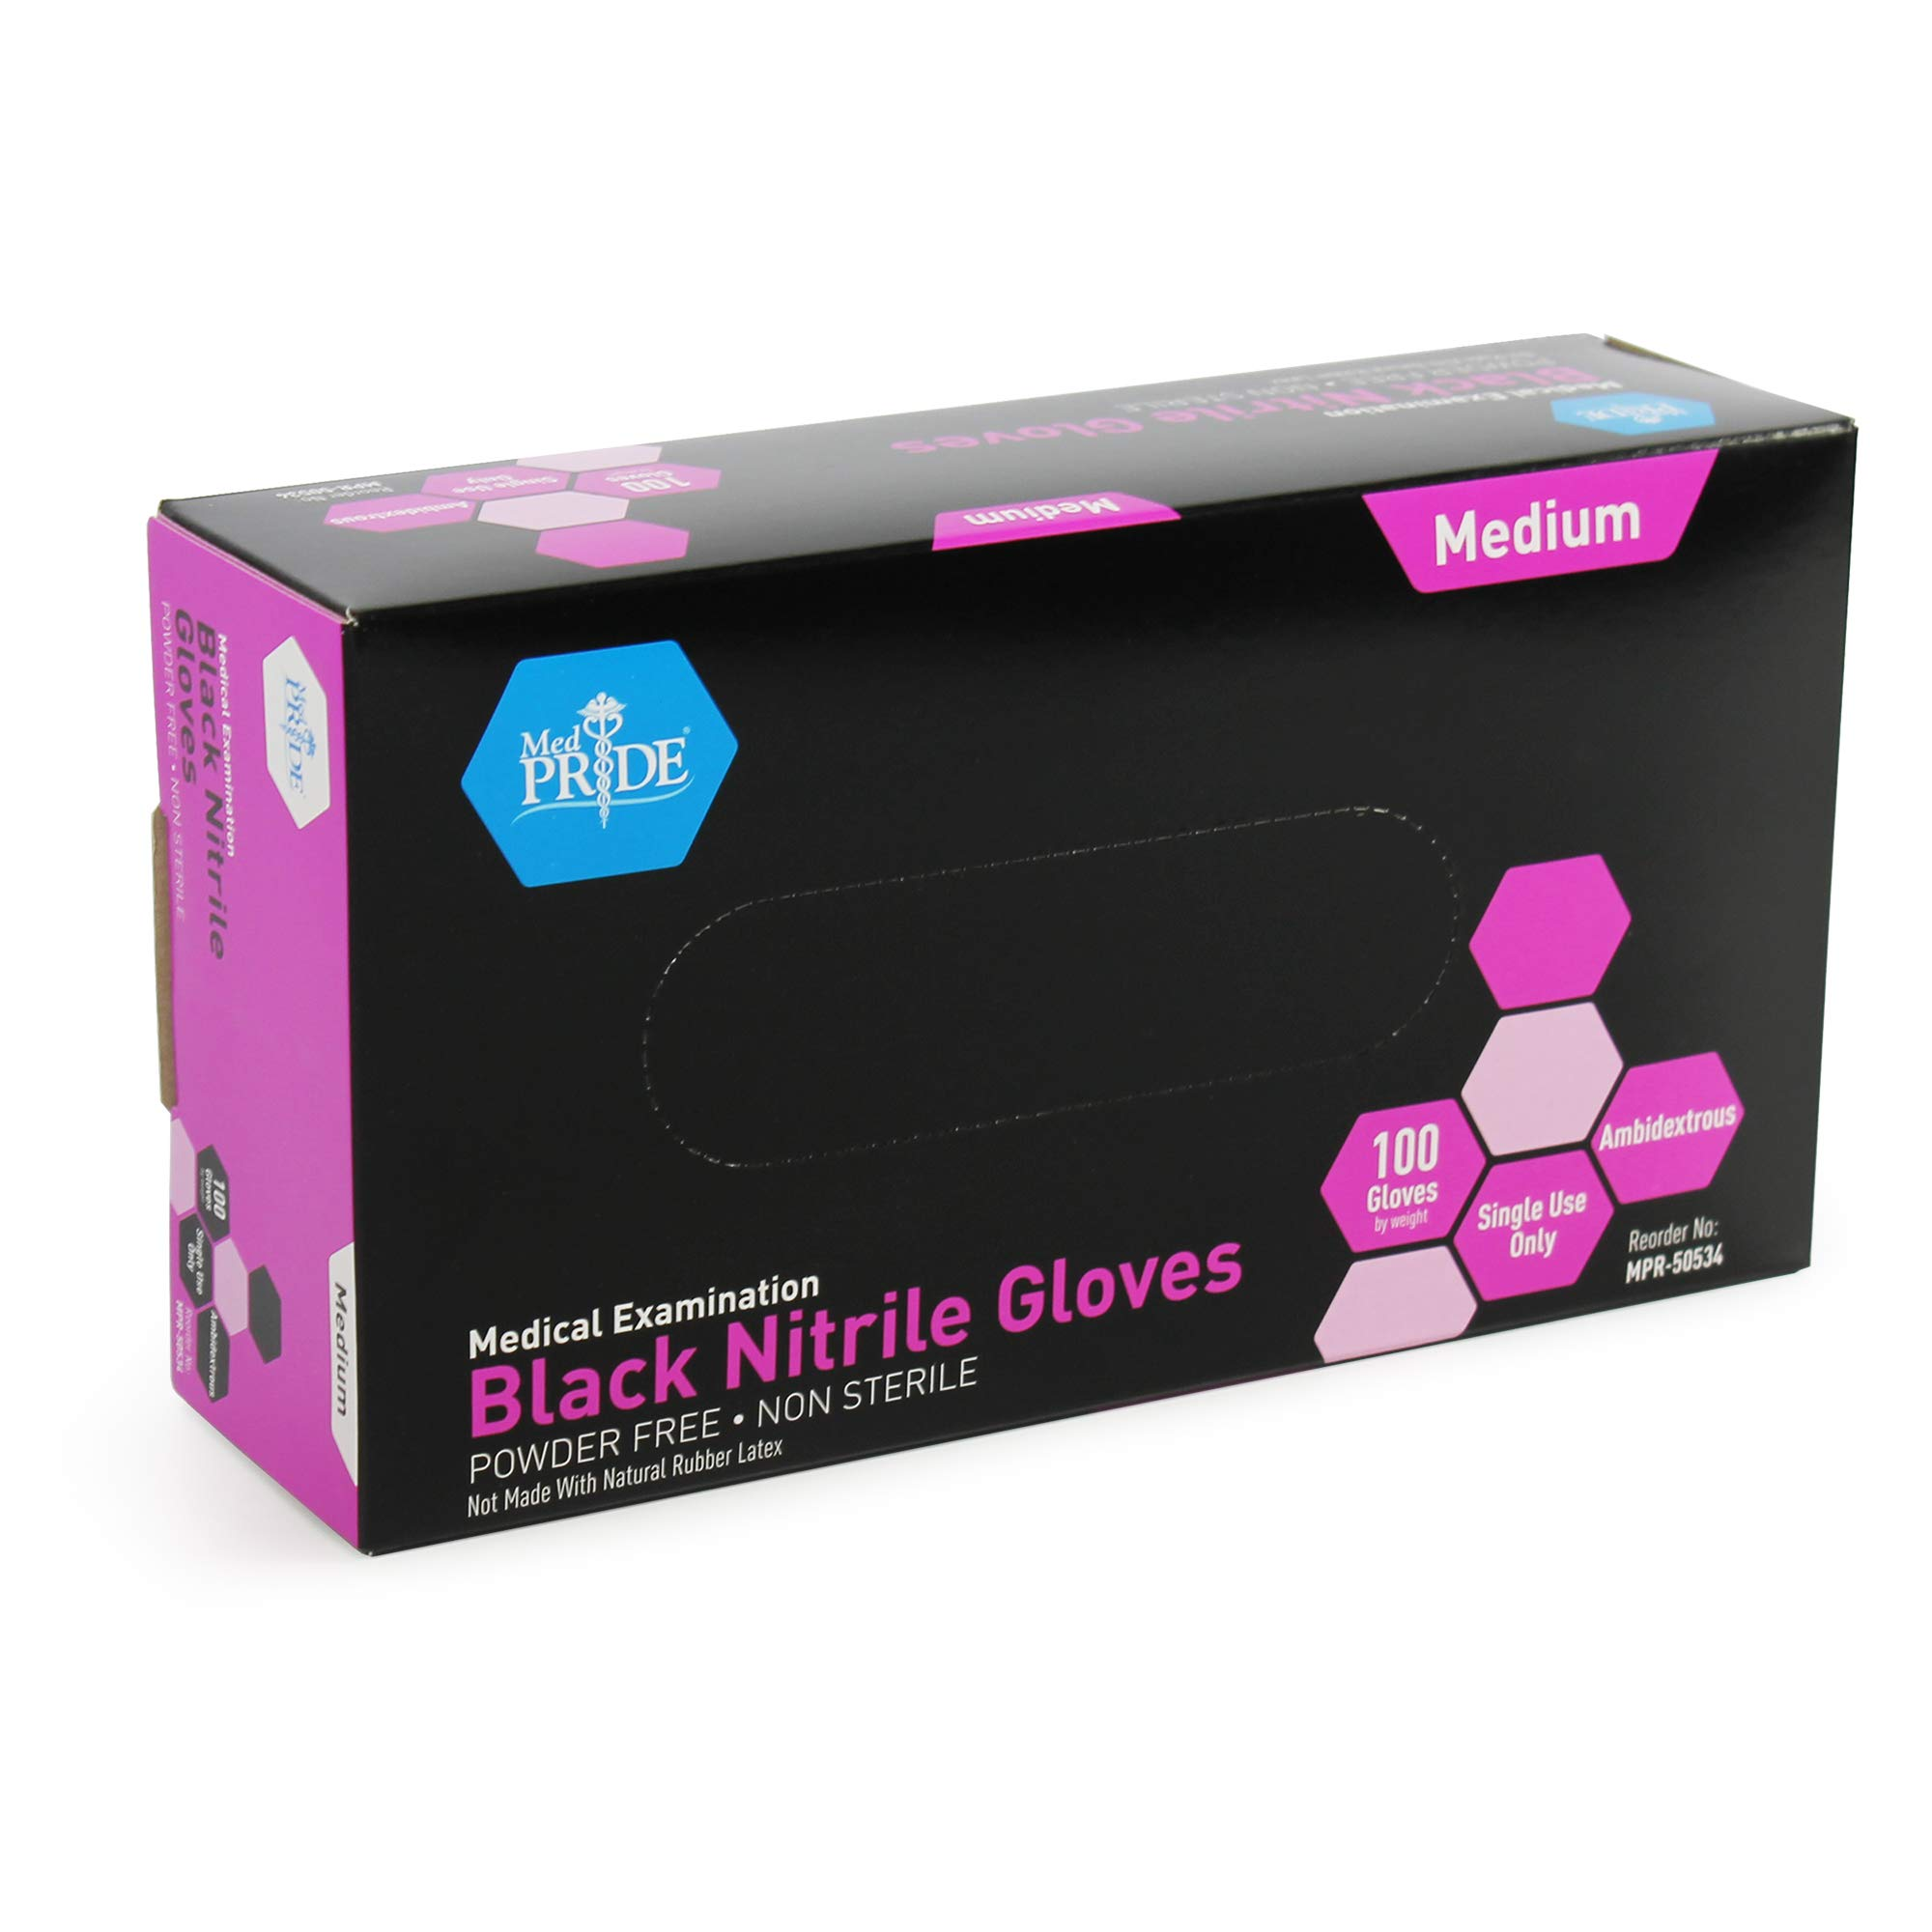 Medpride Medical Exam Nitrile Gloves| Medium Case of 1000| Black, Latex/Powder-Free, Non-Sterile Gloves| Professional Grade for Hospitals, Law Enforcement, Food Vendors, Tattoo Artists, Home Use by MED PRIDE (Image #4)